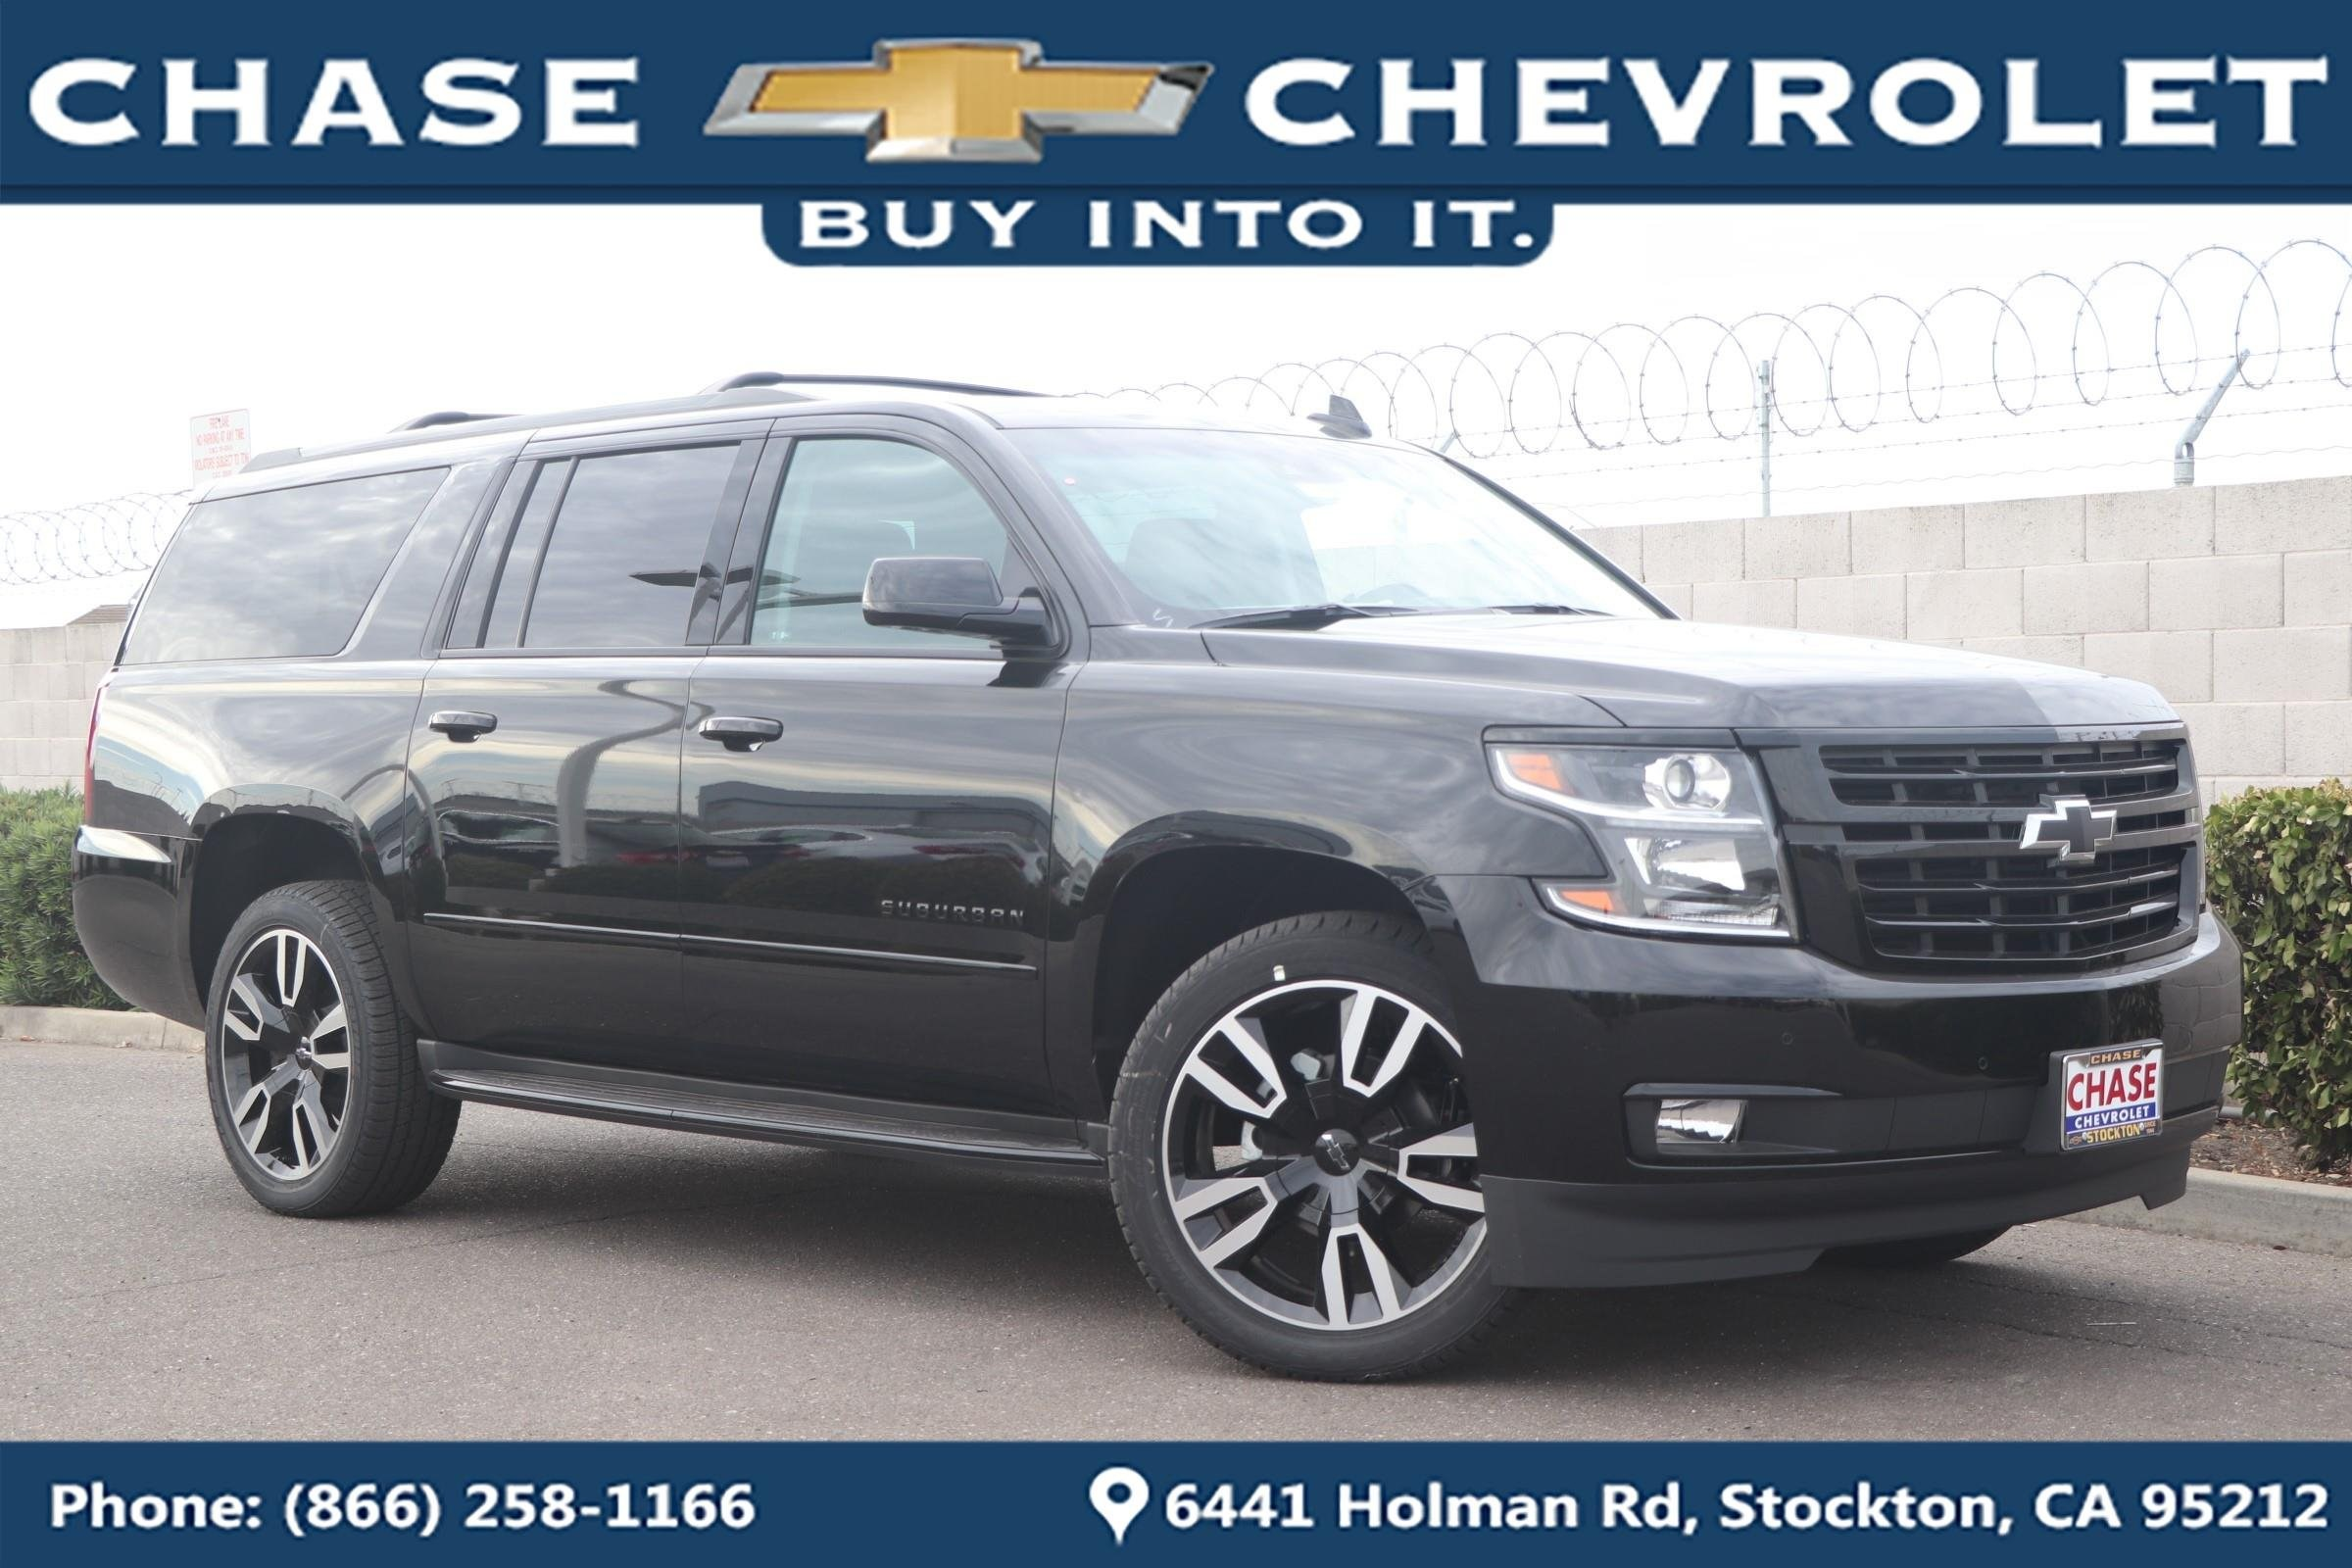 New 2019 Chevrolet Suburban for Sale in Stockton CA